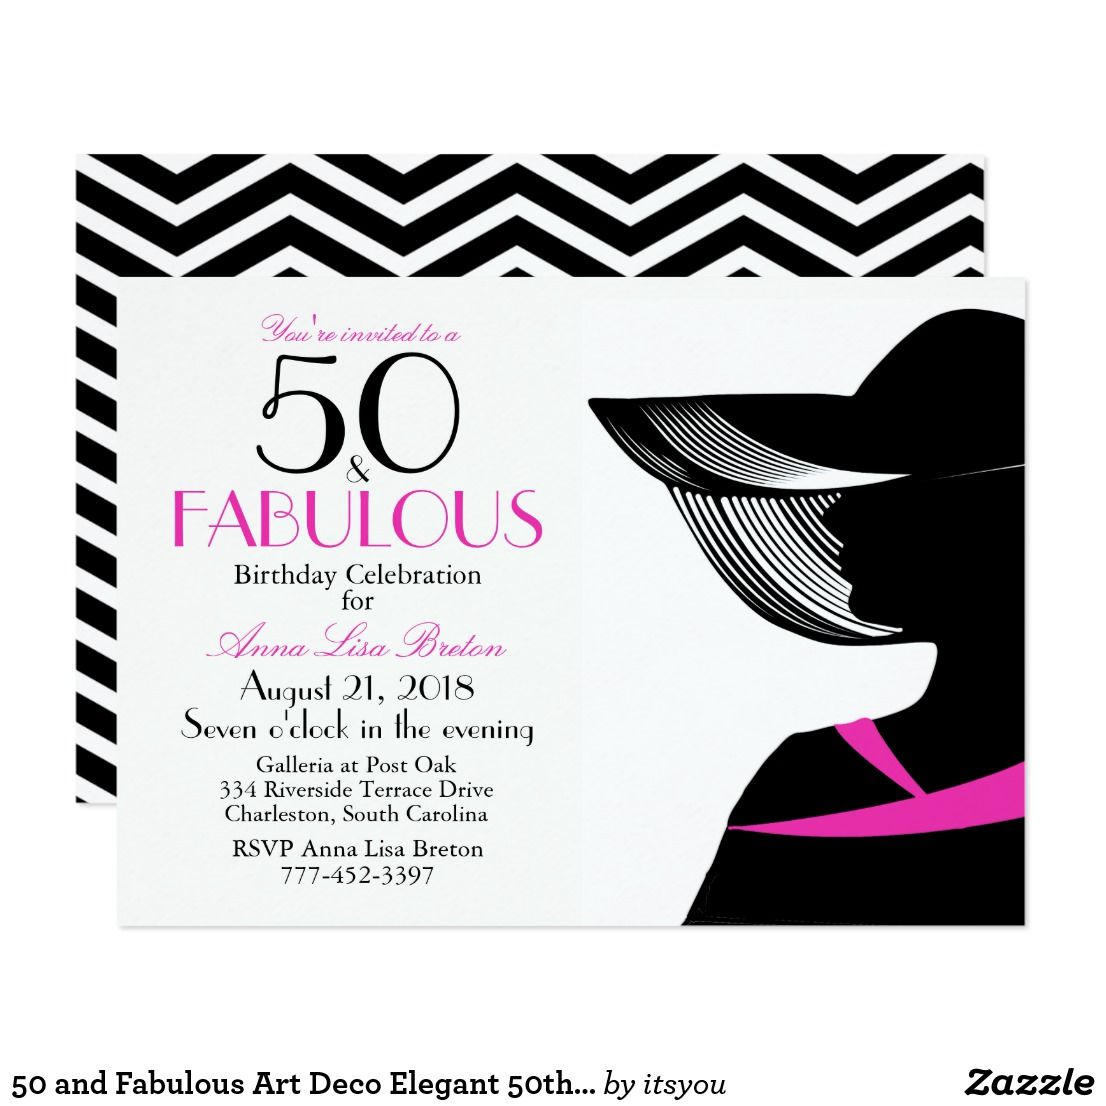 50 and Fabulous Art Deco Elegant 50th Birthday Card | 50th birthday ...